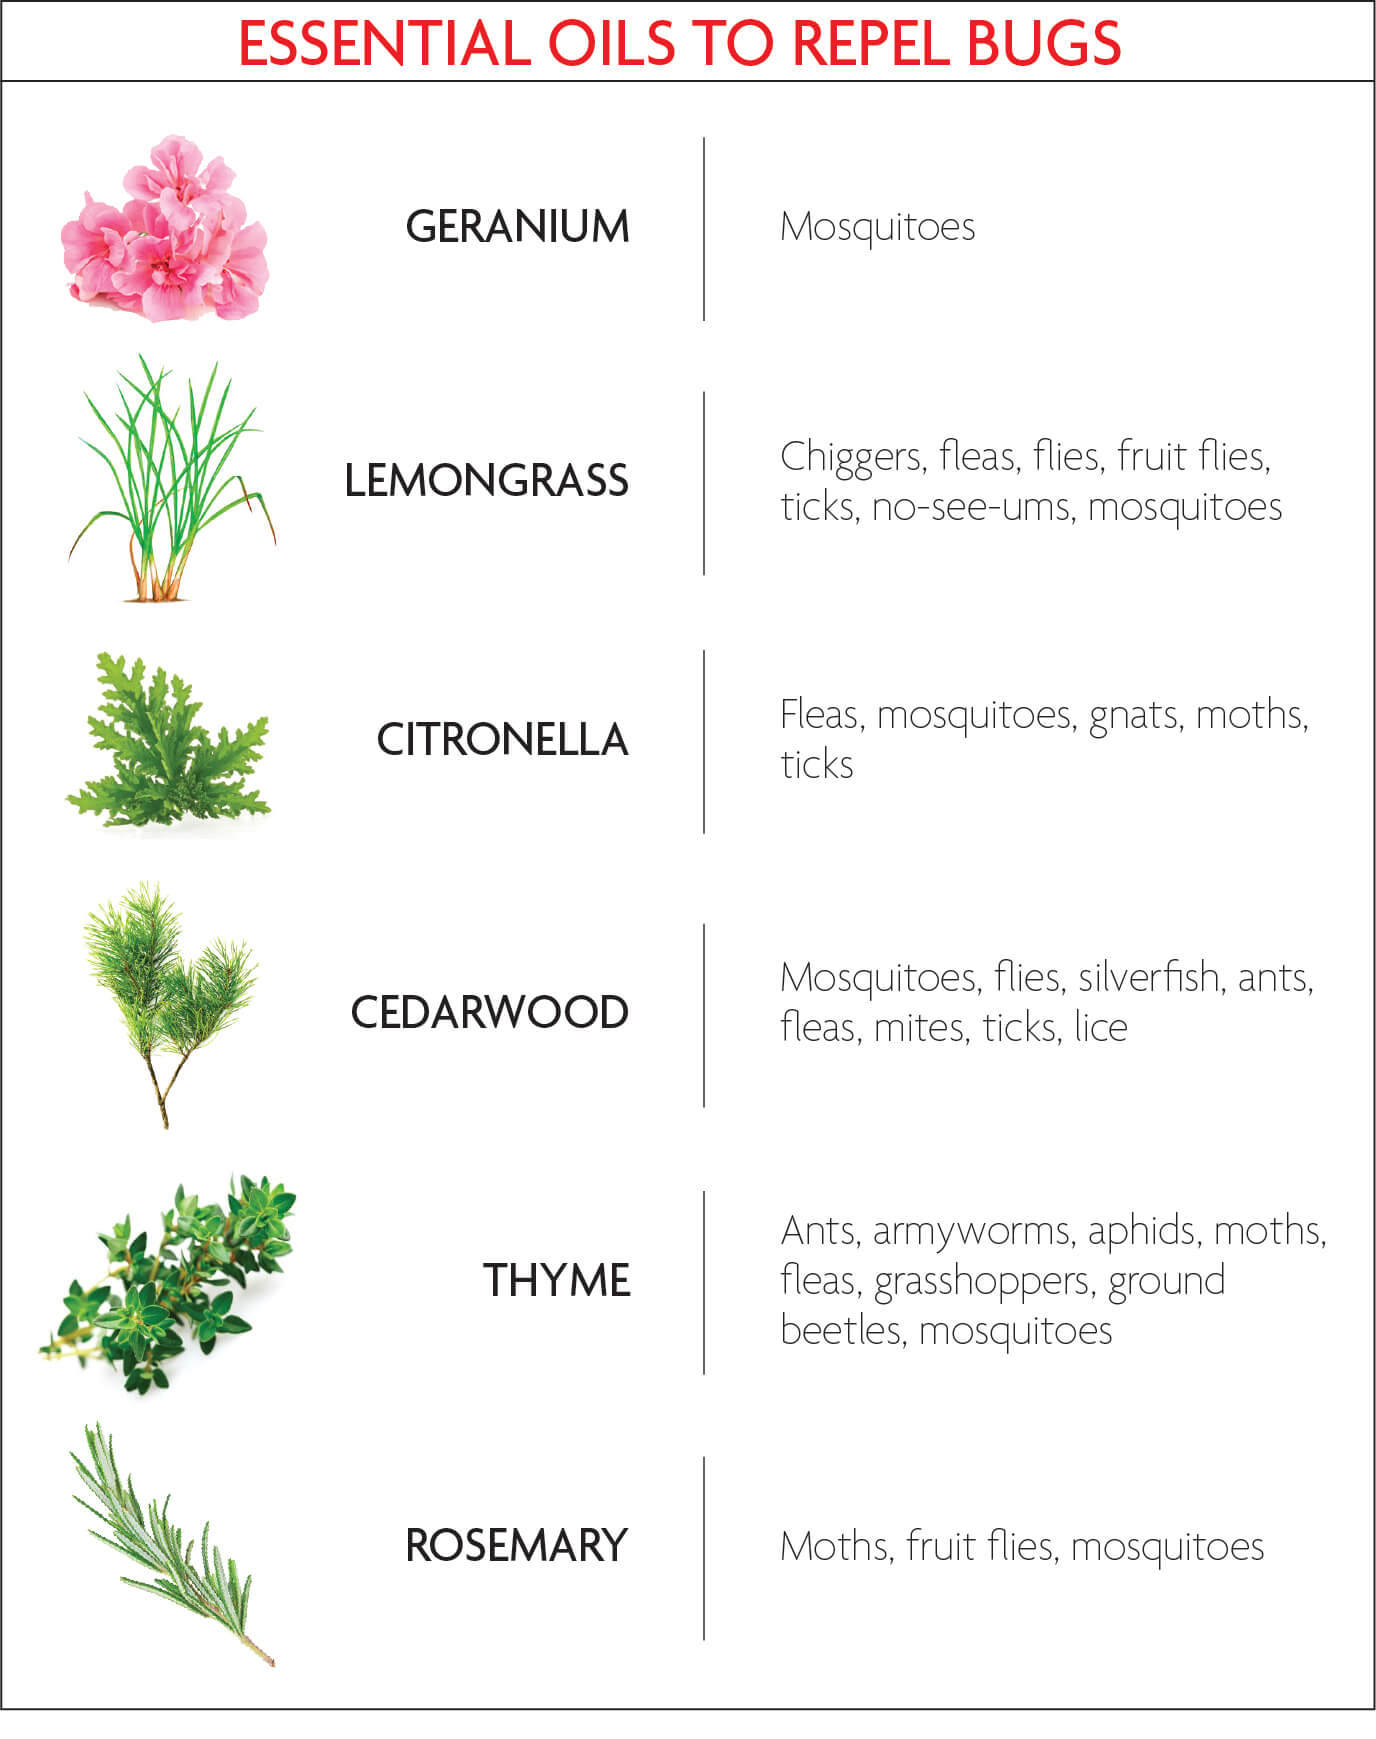 infographic of 6 essential oils and the bugs they repel